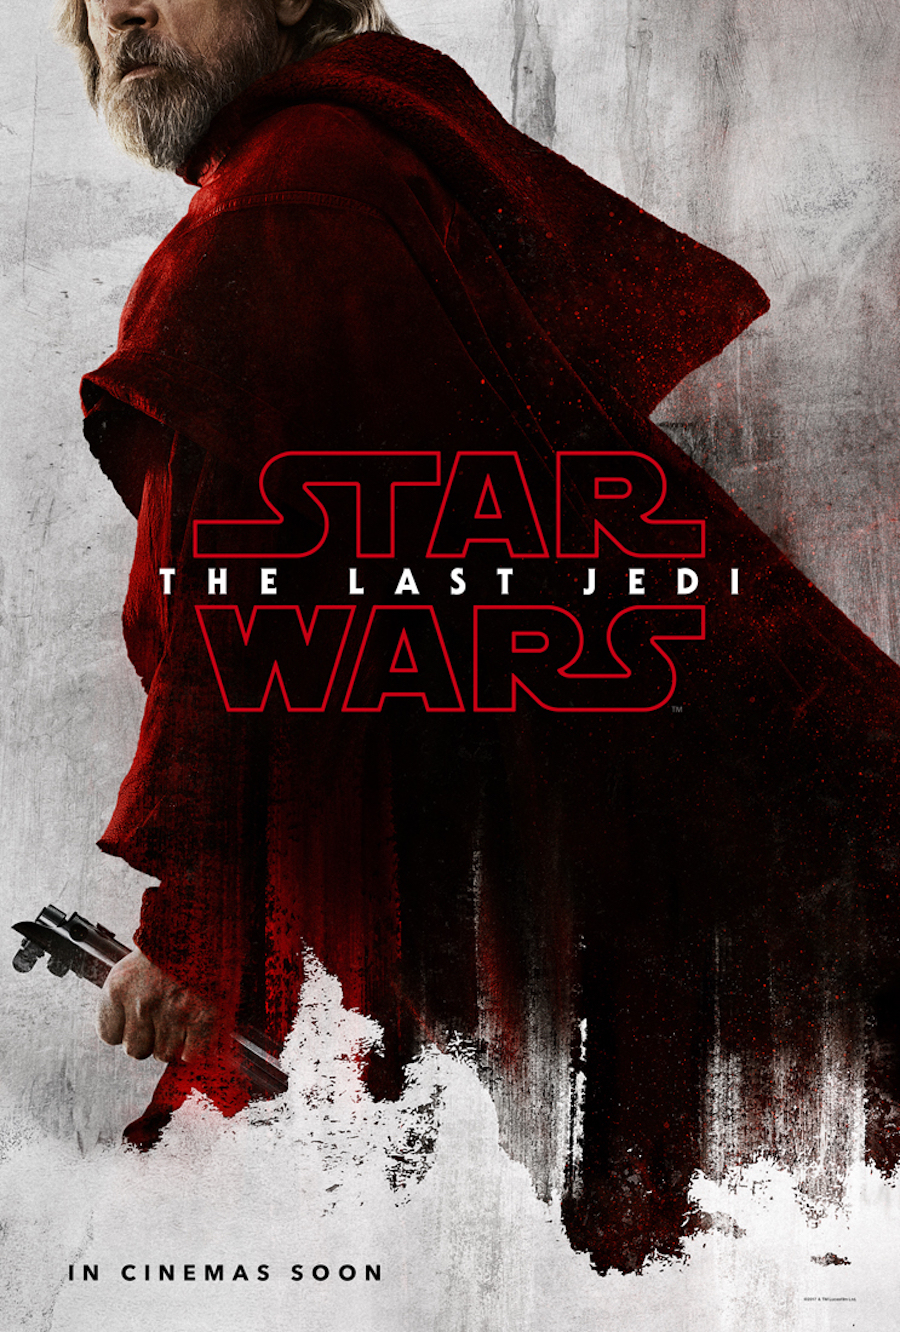 First Posters of Star Wars